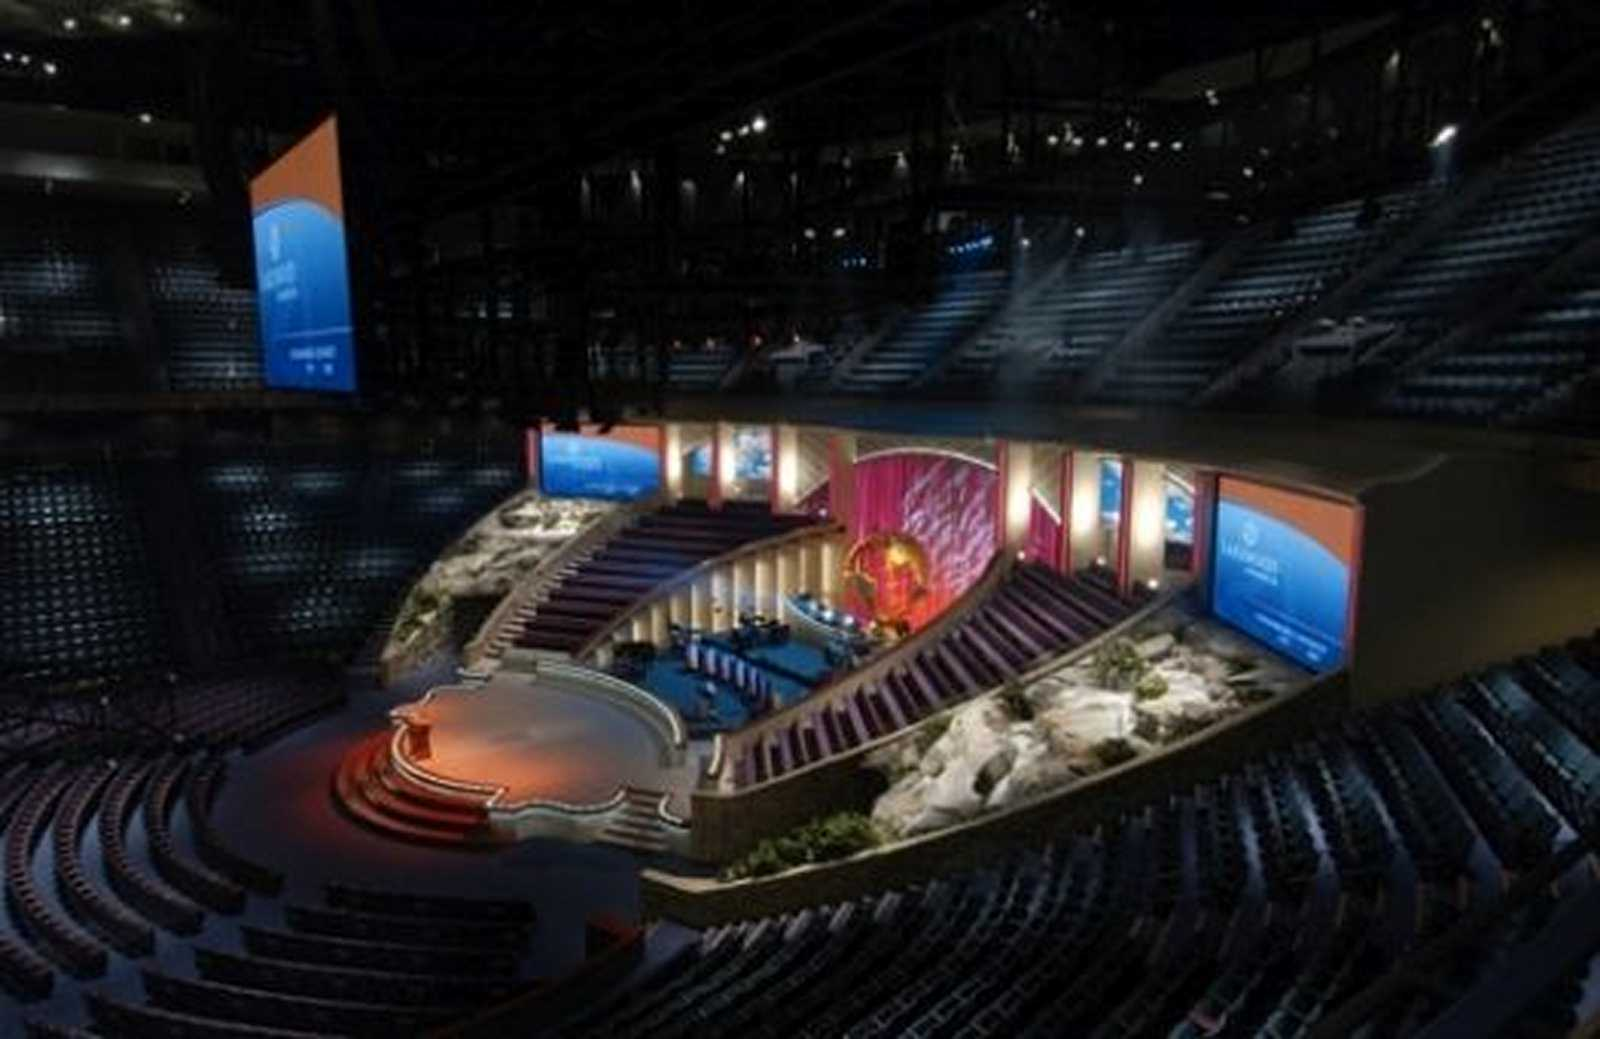 lakewood church dating I'm curious about houston's vast lakewood church, housed in a 16,700-seat arena that not so long ago was home to the houston rockets, i'm curious about the church, but also the pastor, the effervescent joel osteen.